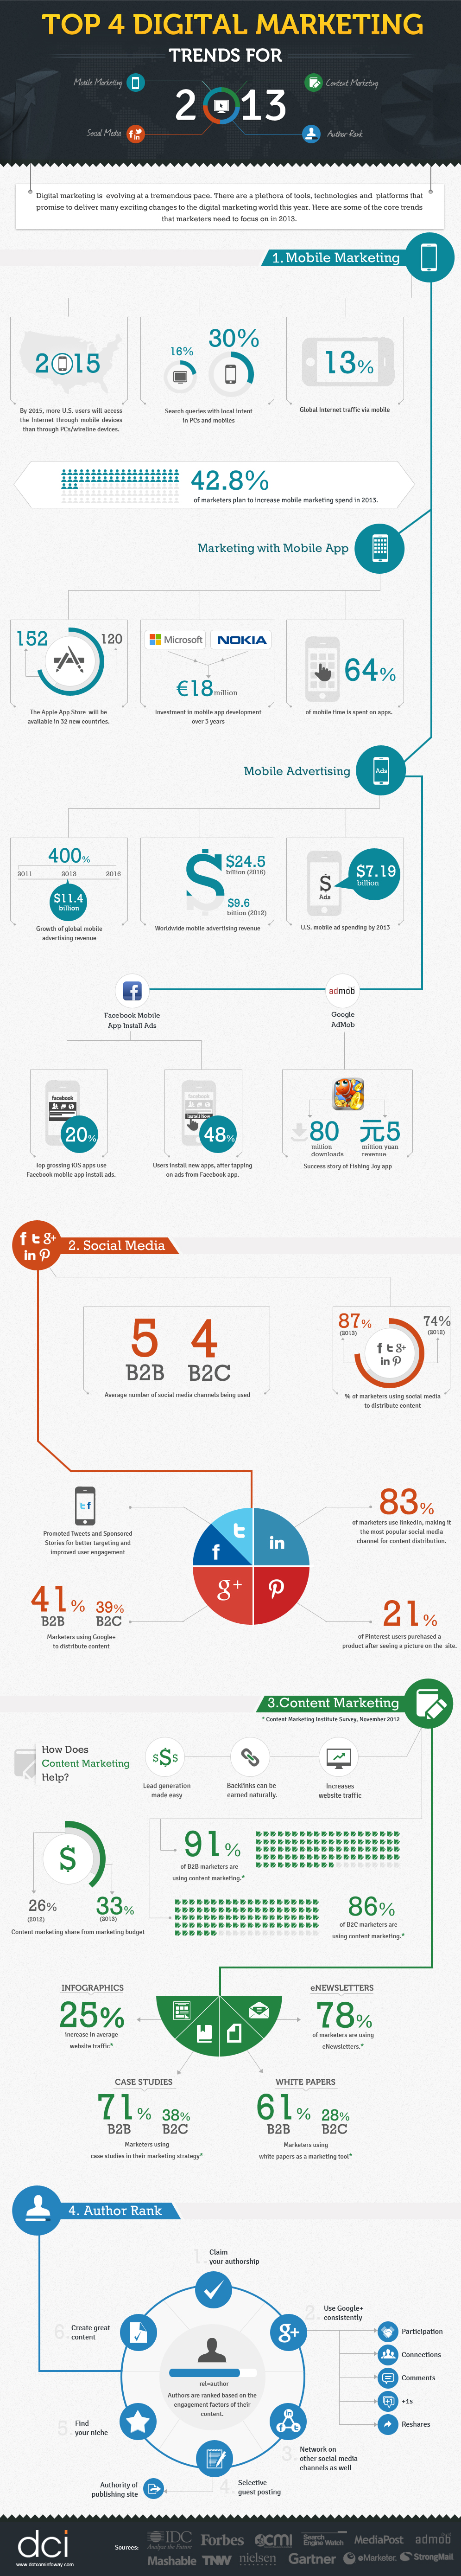 Top 4 Digital Marketing Trends For 2013 Via Infographic